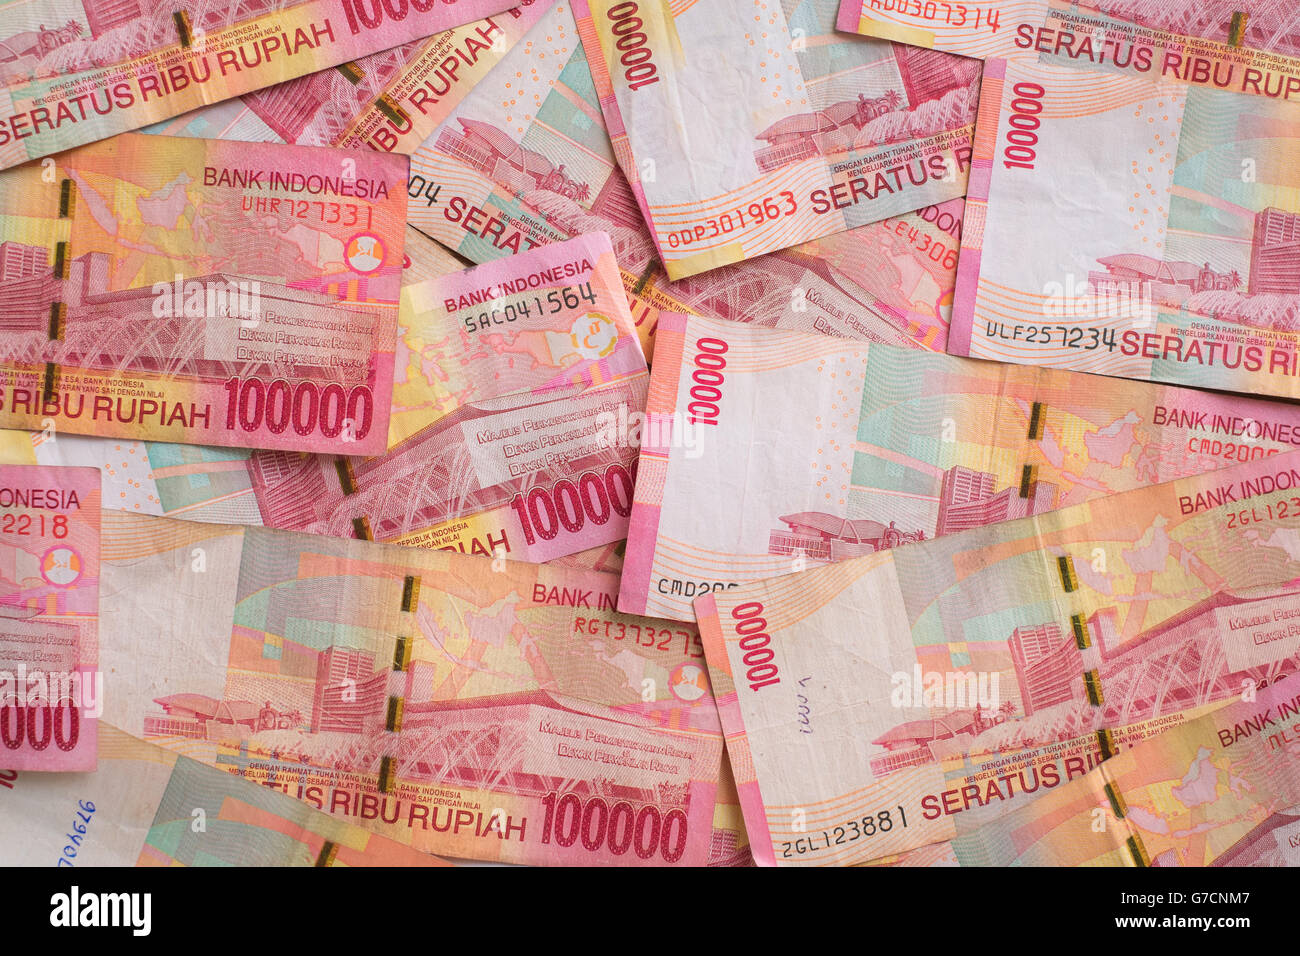 Indonesia currency notes - Stock Image